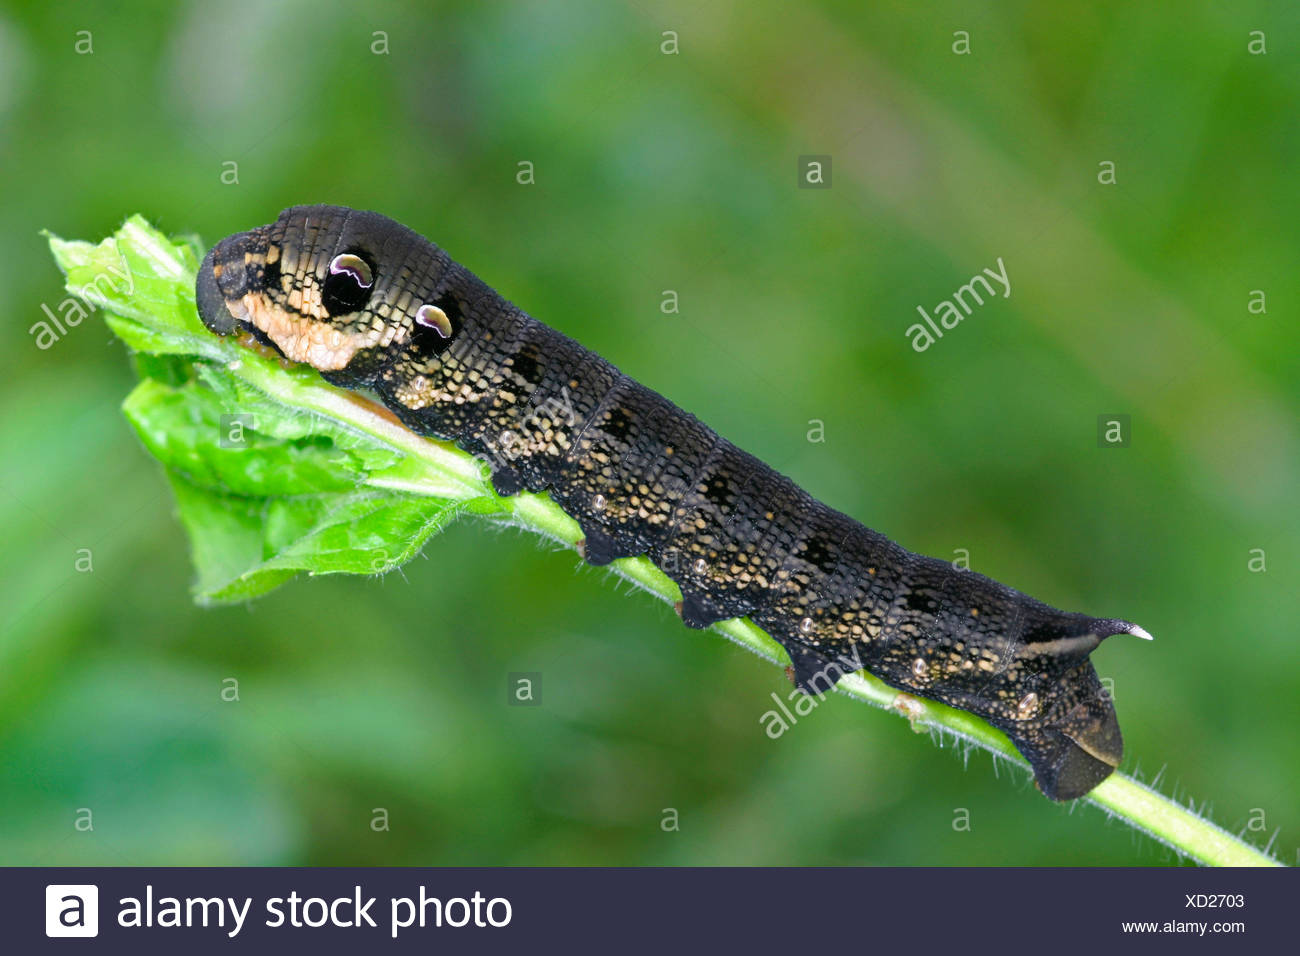 elephant hawkmoth (Deilephila elpenor), caterpillar on a twig, Germany Stock Photo